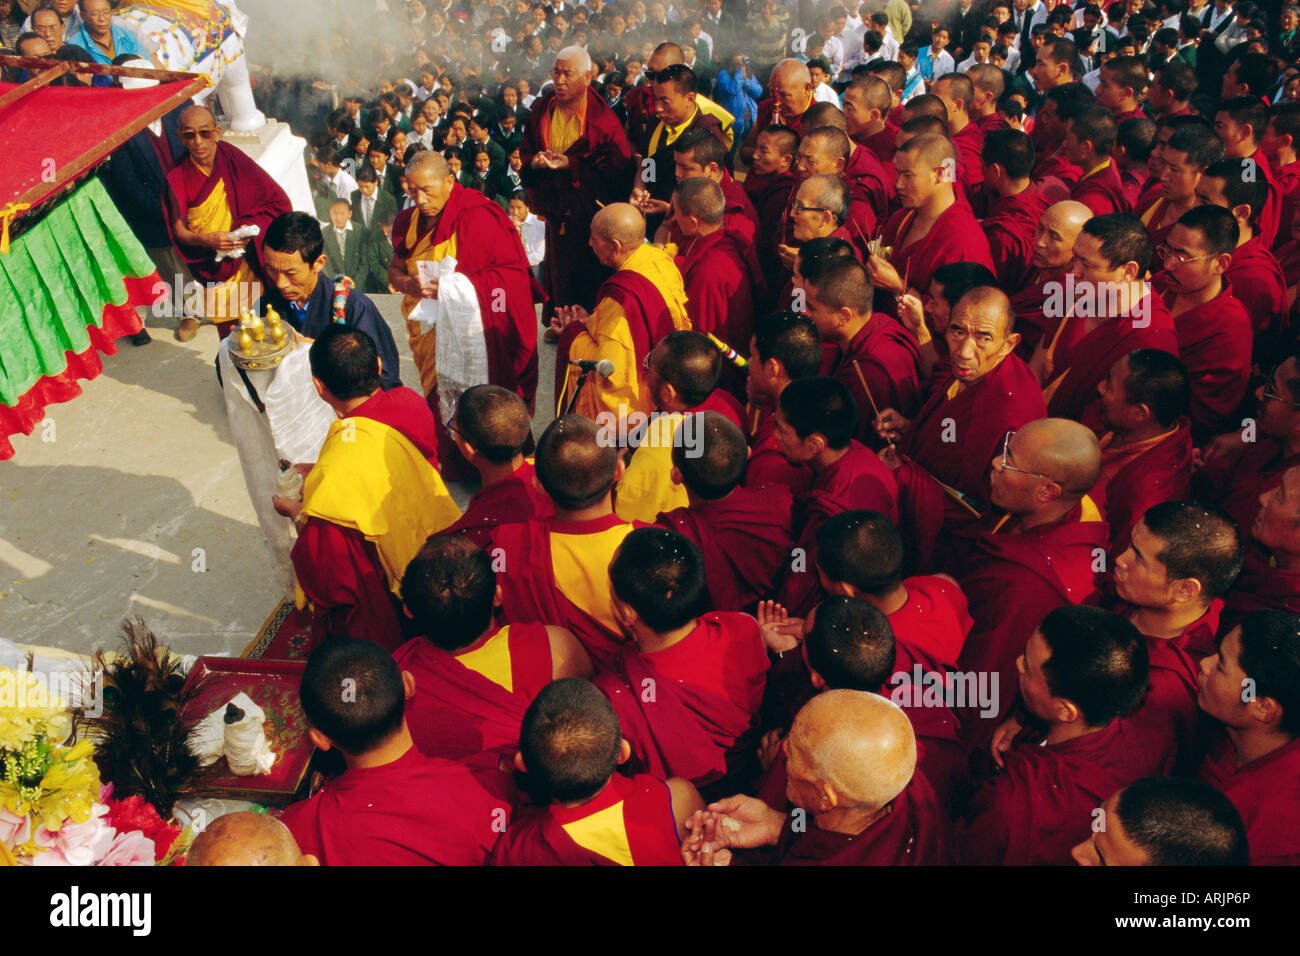 Buddhist monks giving offerings to the image of the Dalai Lama during the Losar (Tibetan New Year), Bodnath, Katmandu, - Stock Image